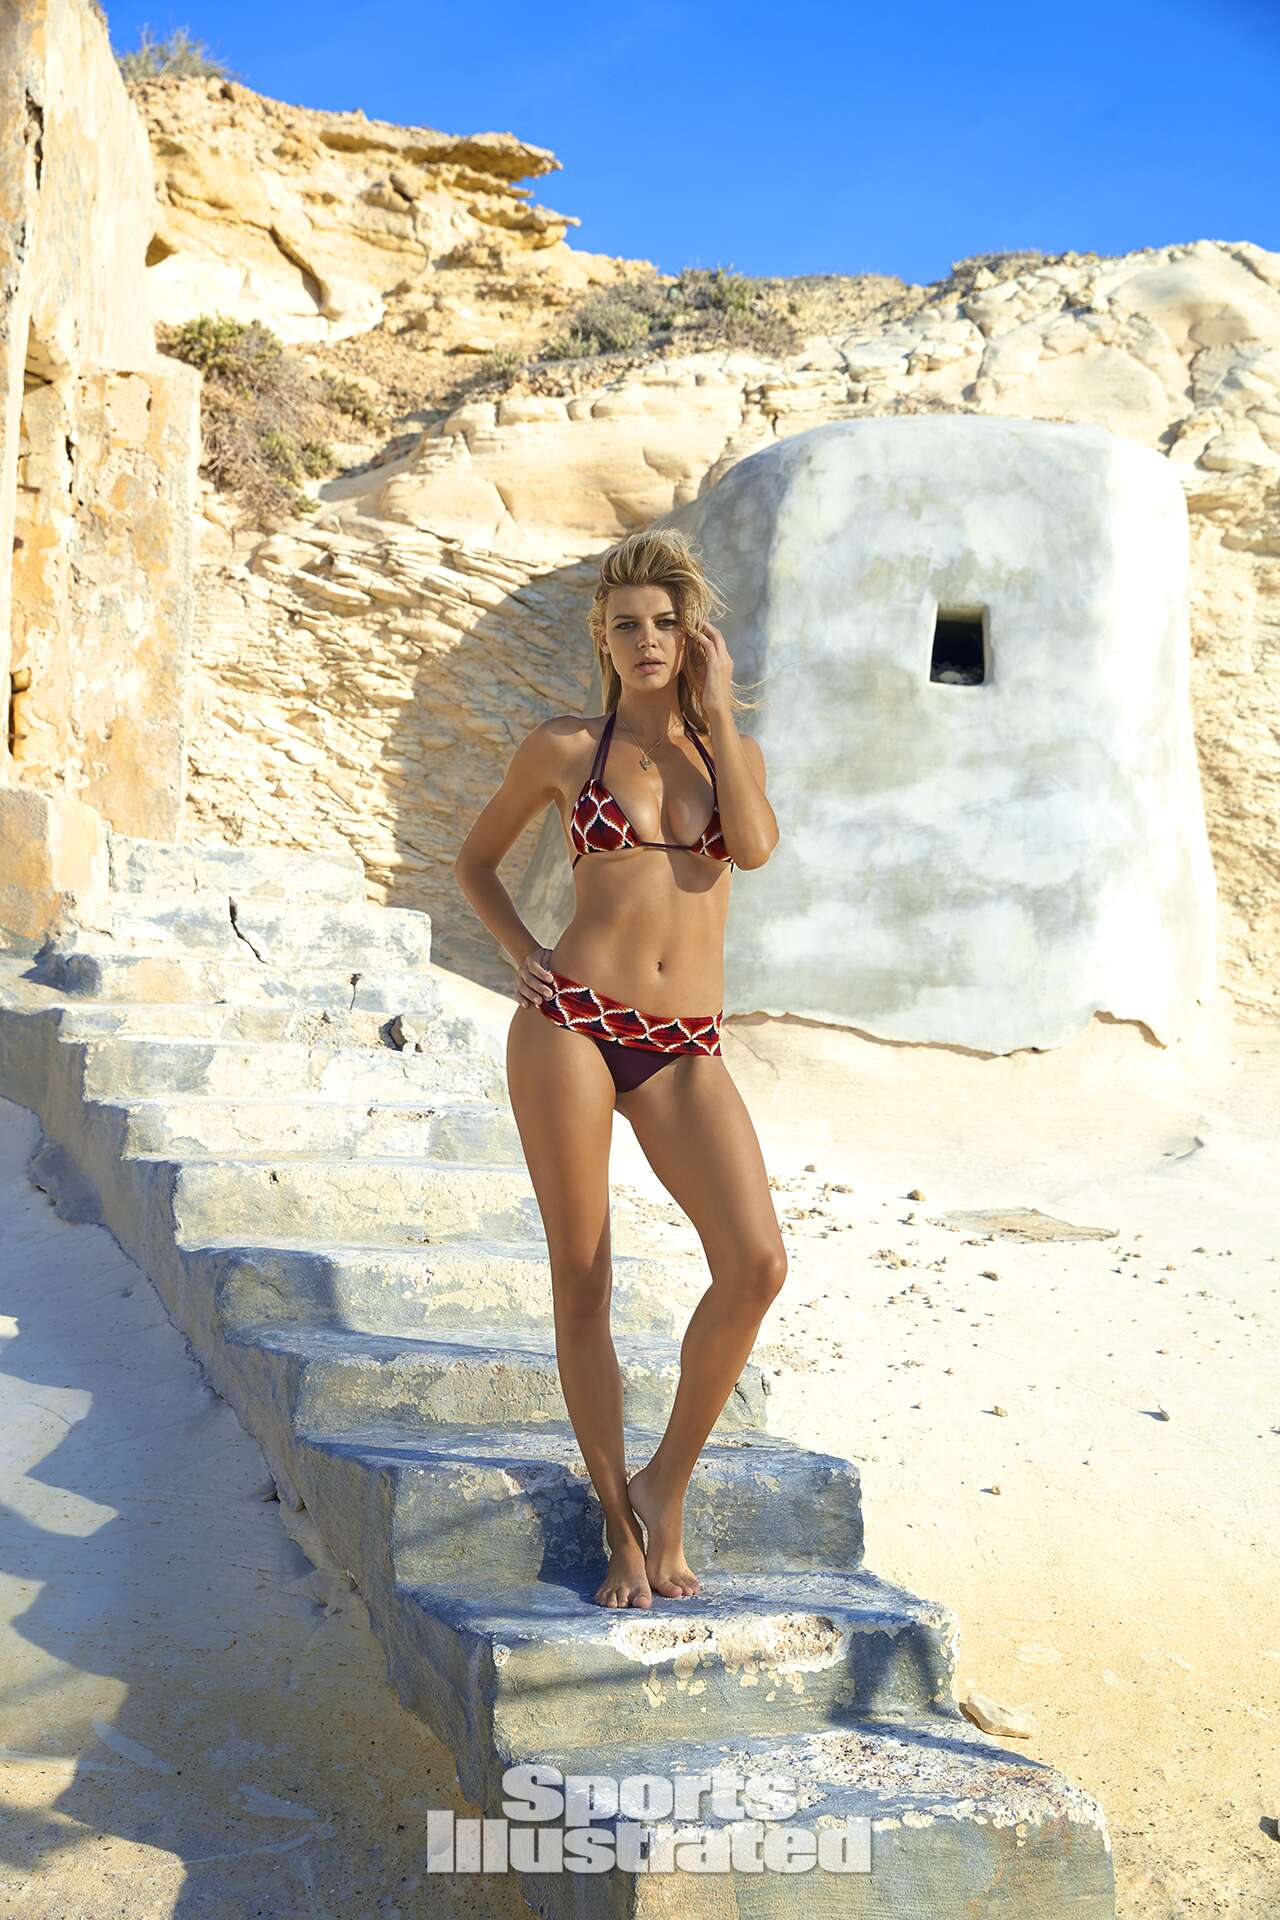 Kelly Rohrbach was photographed by Ben Watts in Malta. Swimsuit by Indie Soul.